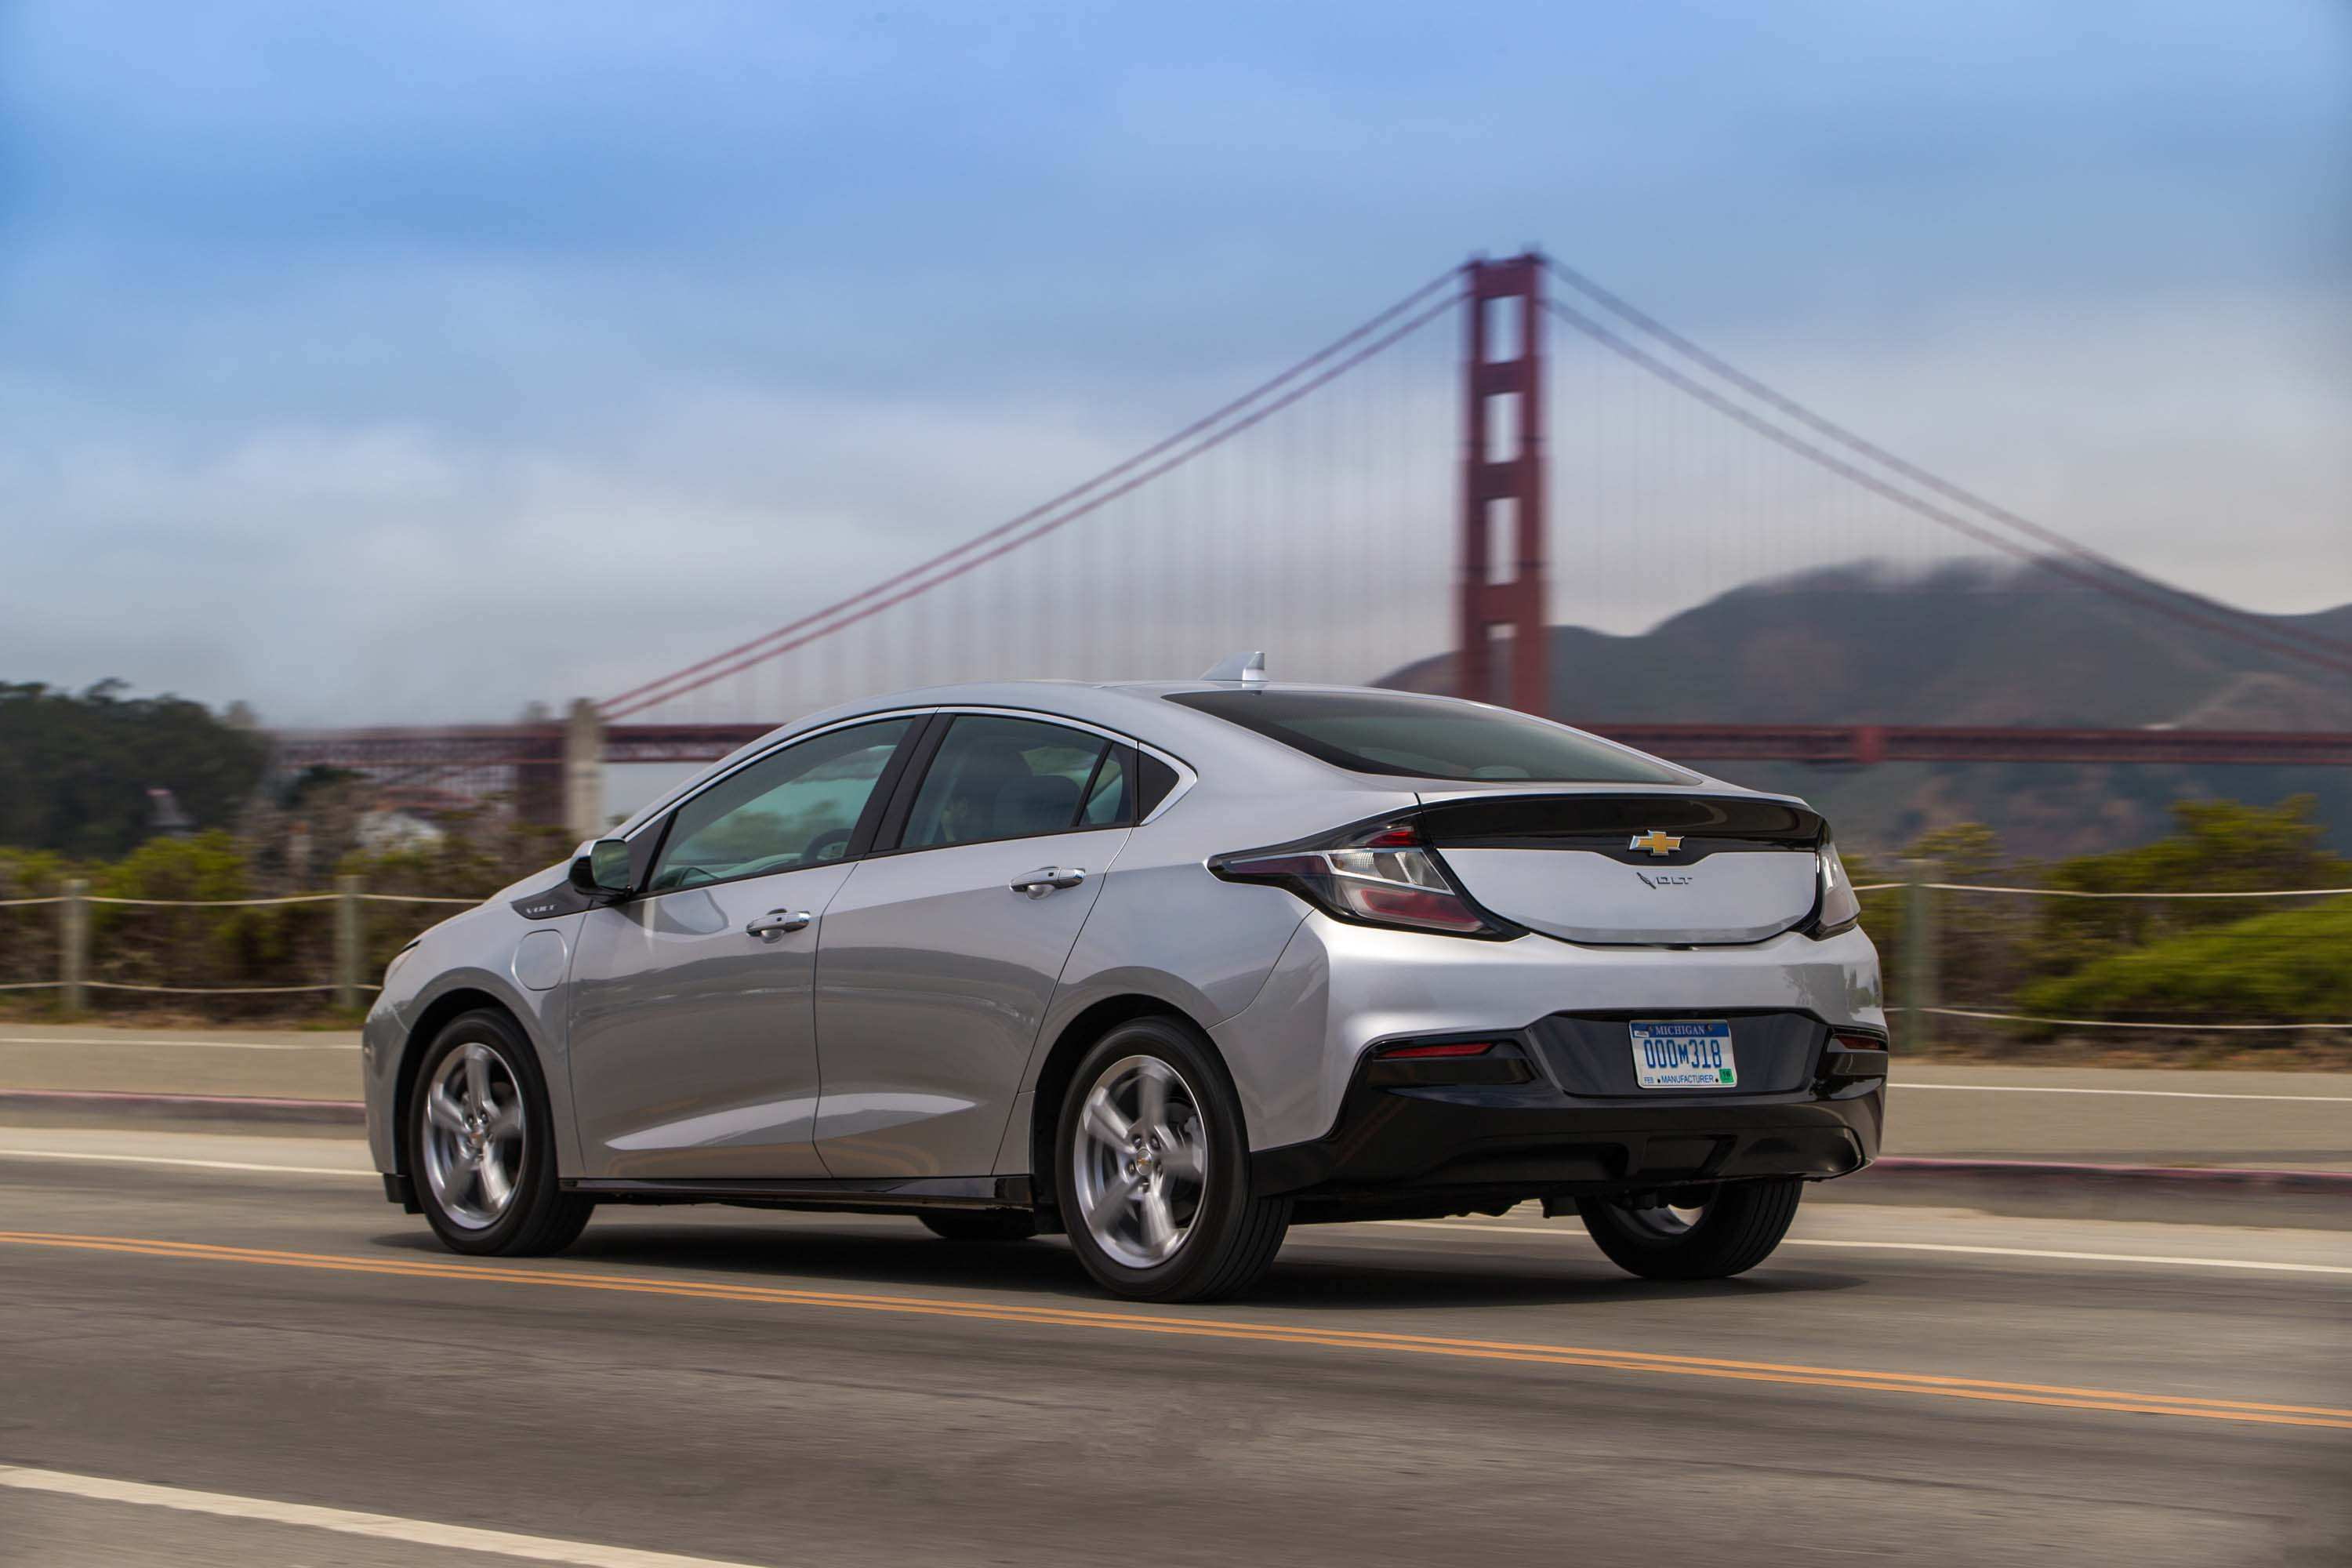 38 Concept of 2019 Chevrolet Volt Spy Shoot with 2019 Chevrolet Volt